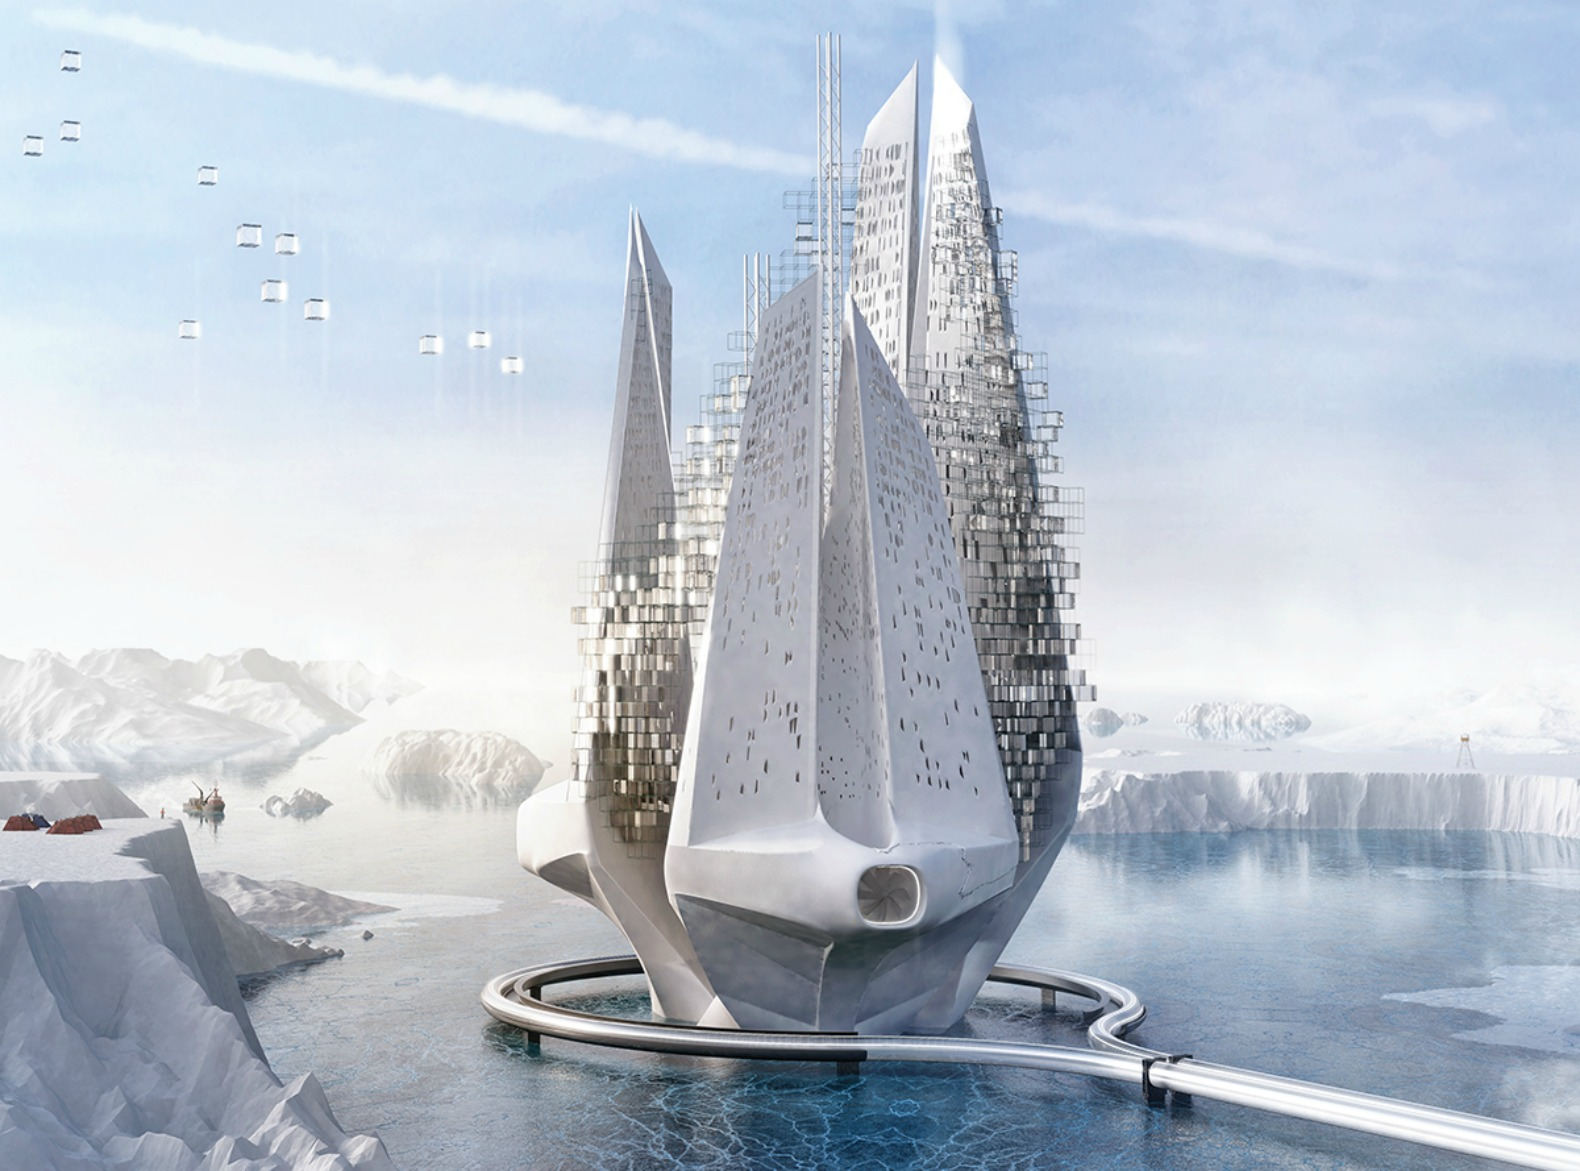 Futuristic floating skyscraper 'heals' the effects of climate change